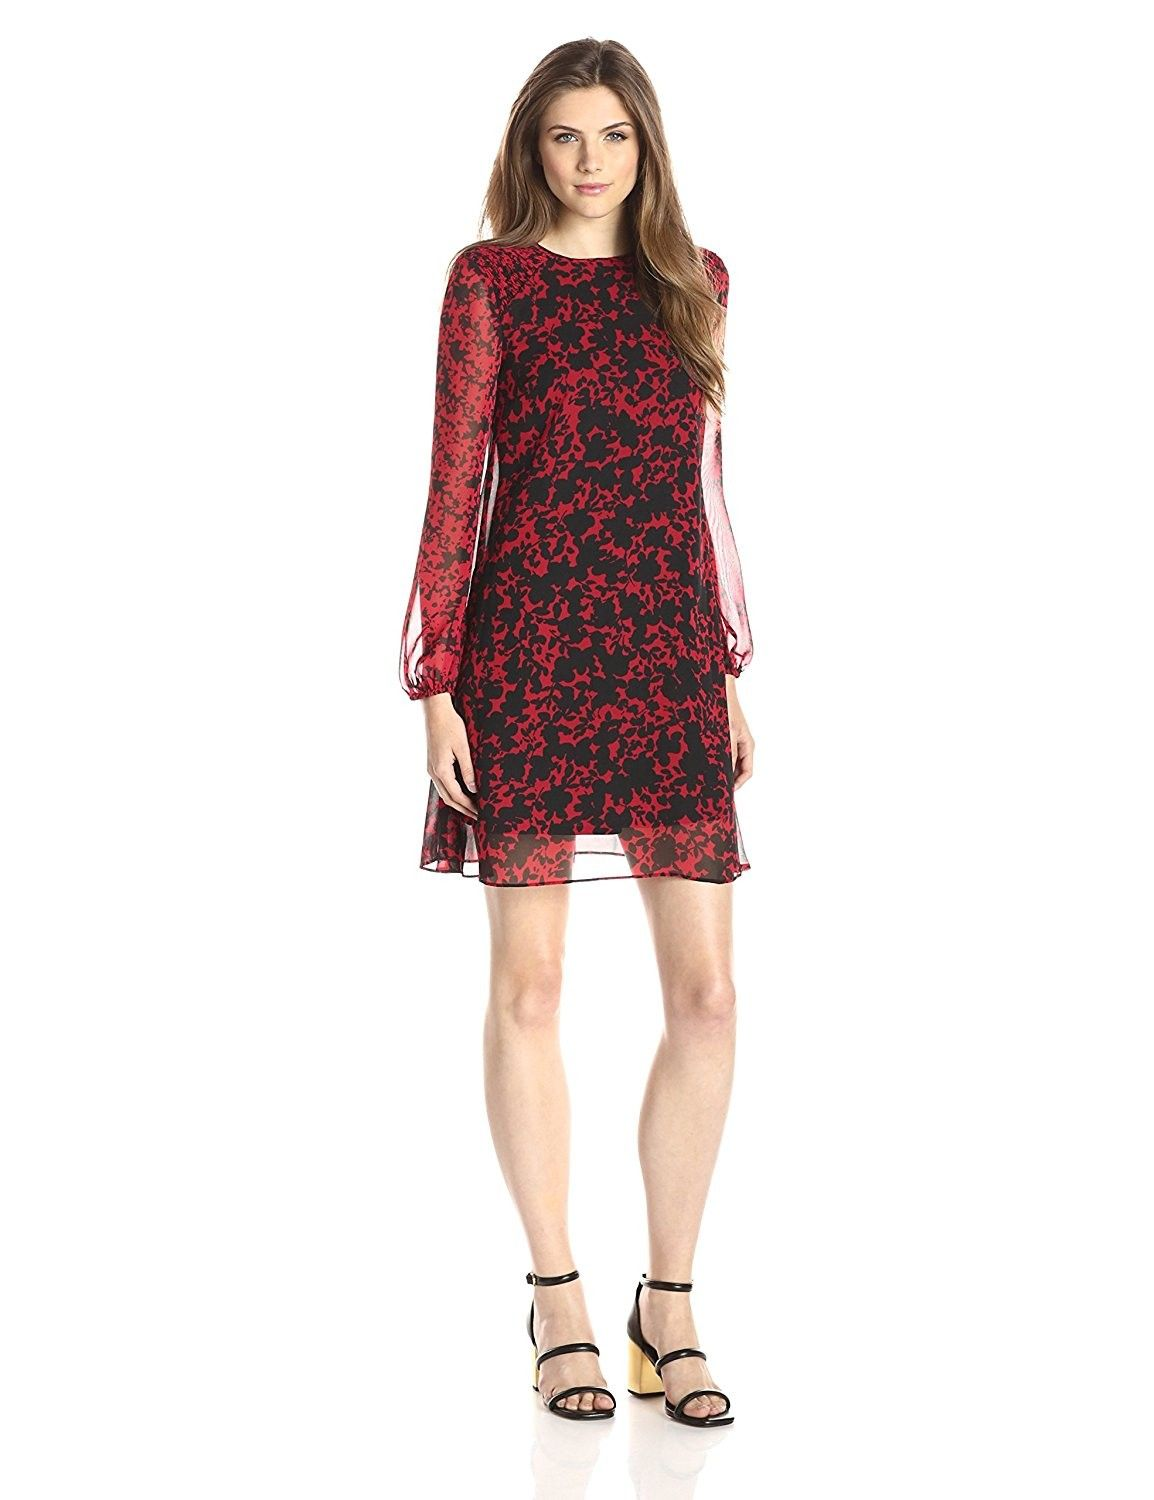 af1630f42 Women's Clothing, Dresses, Work, Women's Long-Sleeve Printed Shift Dress -  Crimson/Black - CF11WD5IHBL #women #fashion #clothing #style #outfits #Work  ...